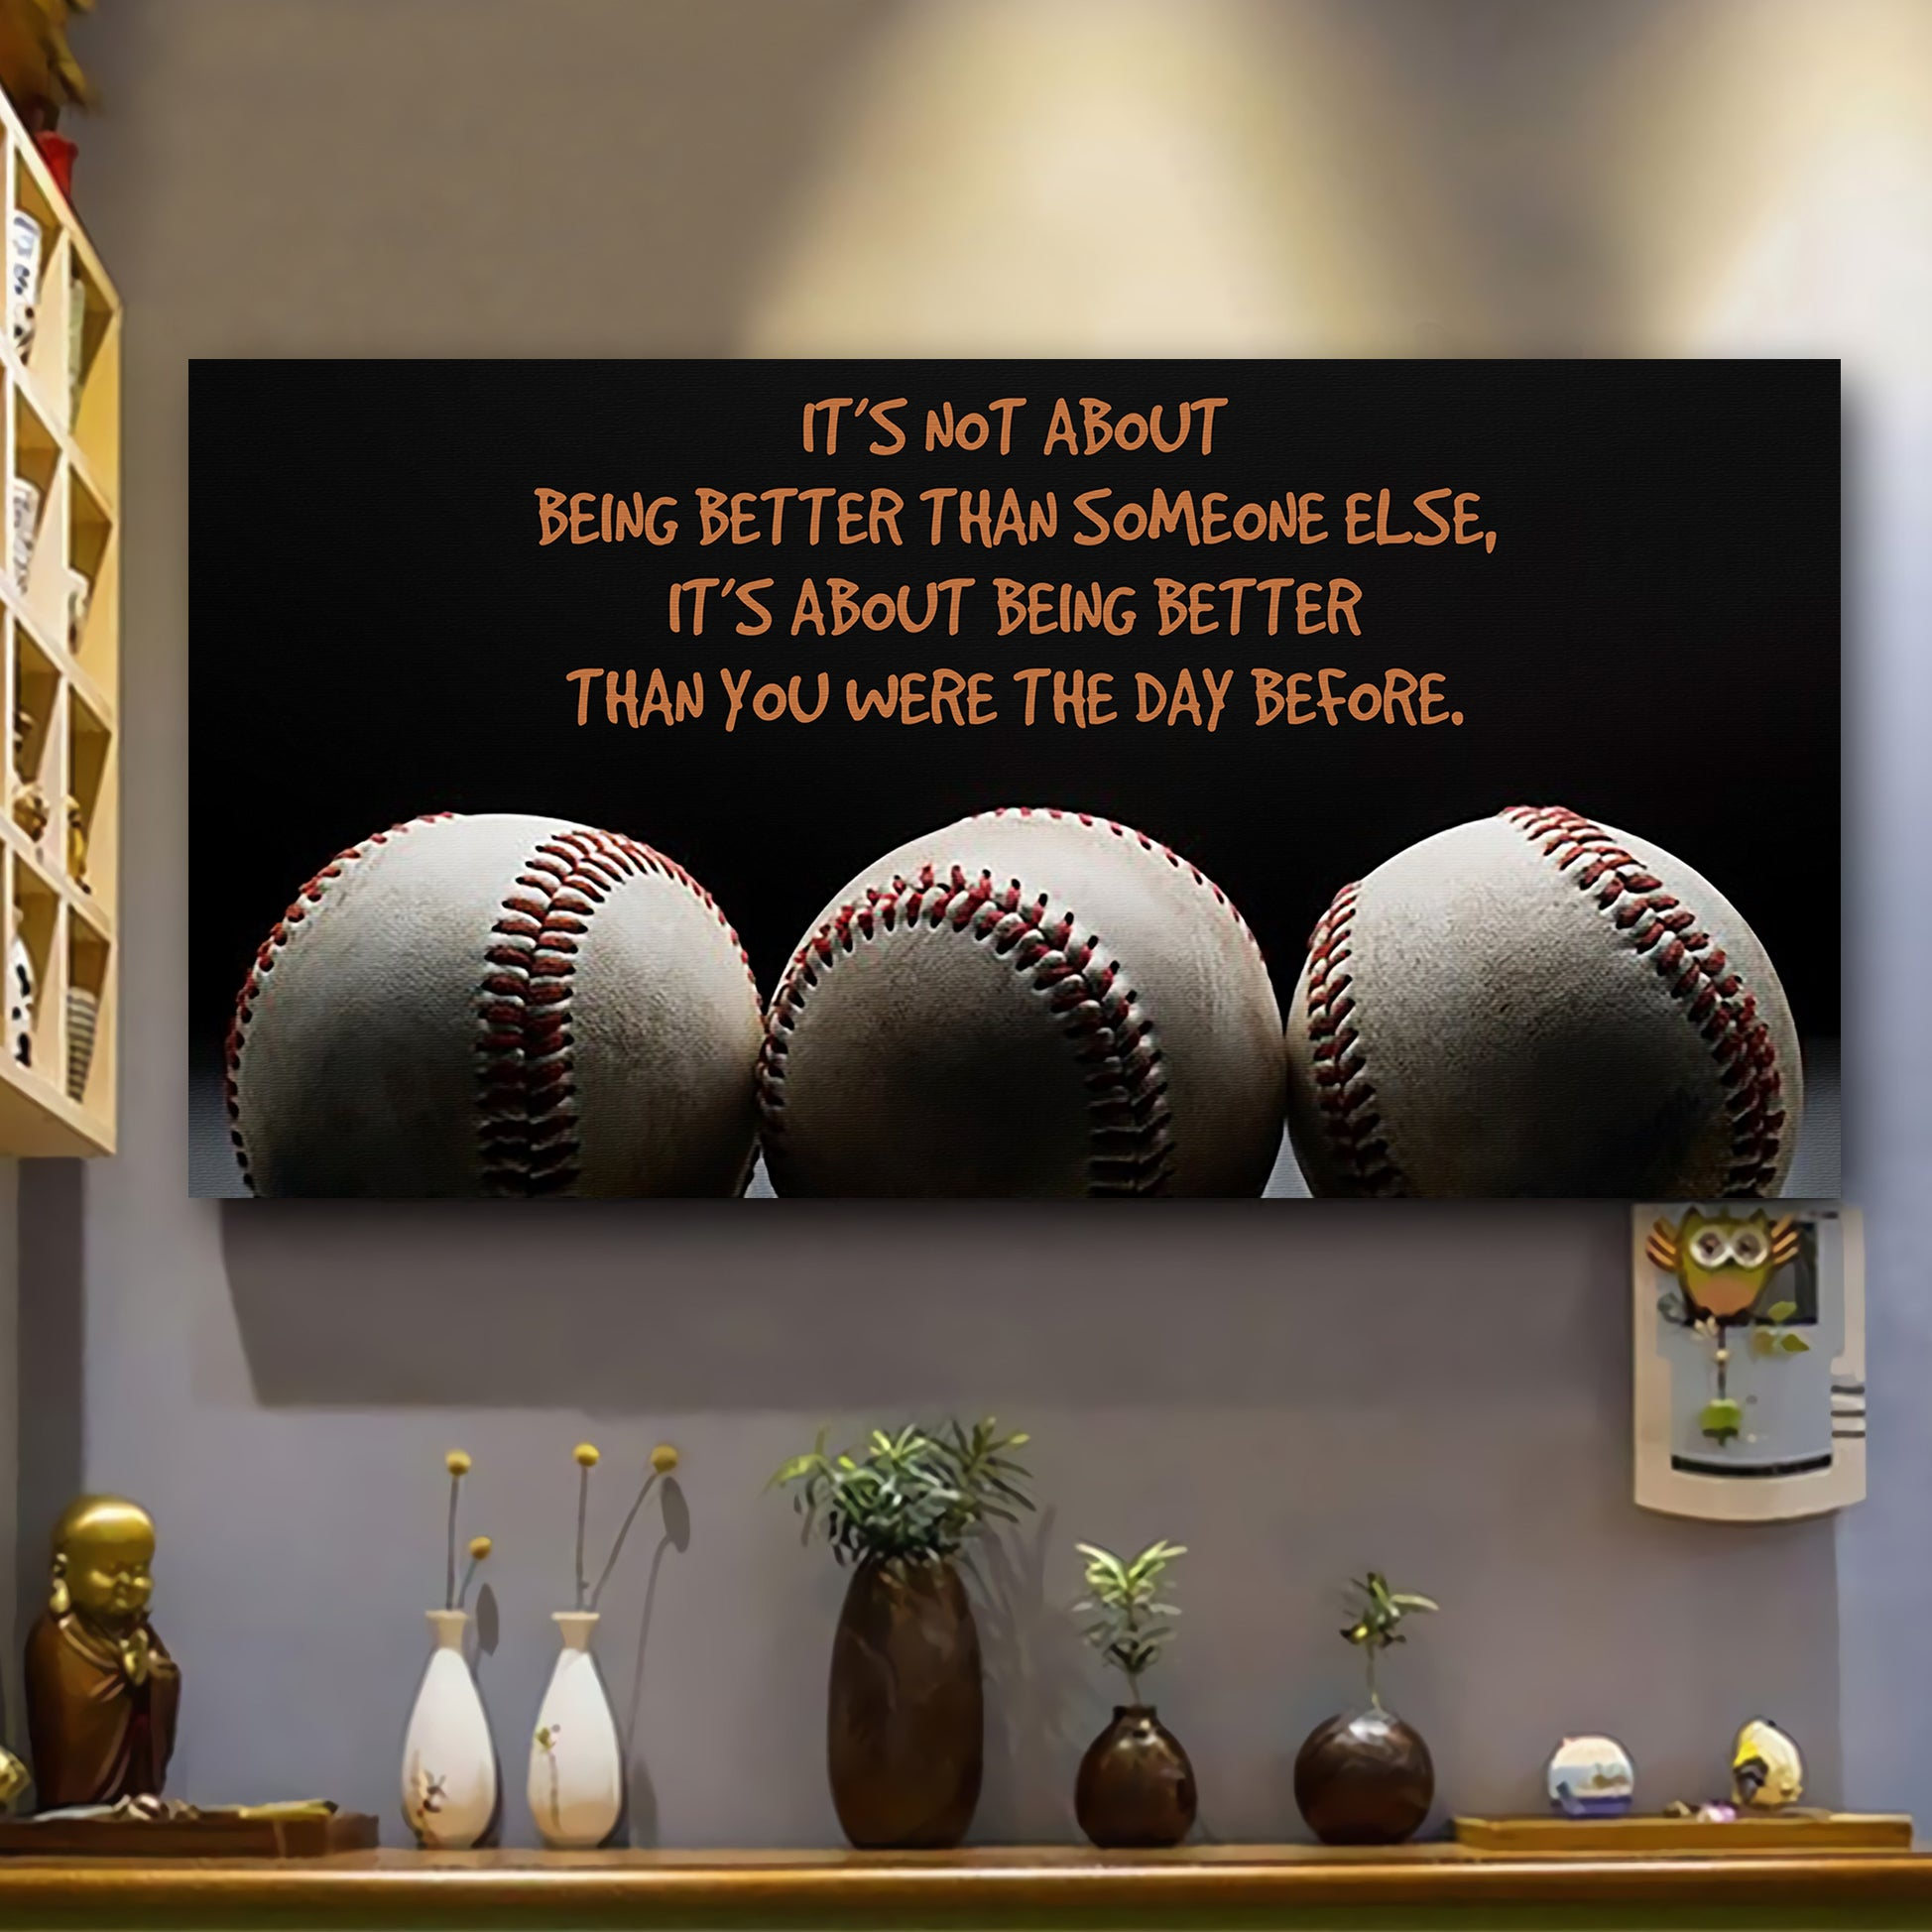 (LP200) Customizable Baseball Poster canvas - It's not about - FREE SHIPPING ON ORDERS OVER 75$